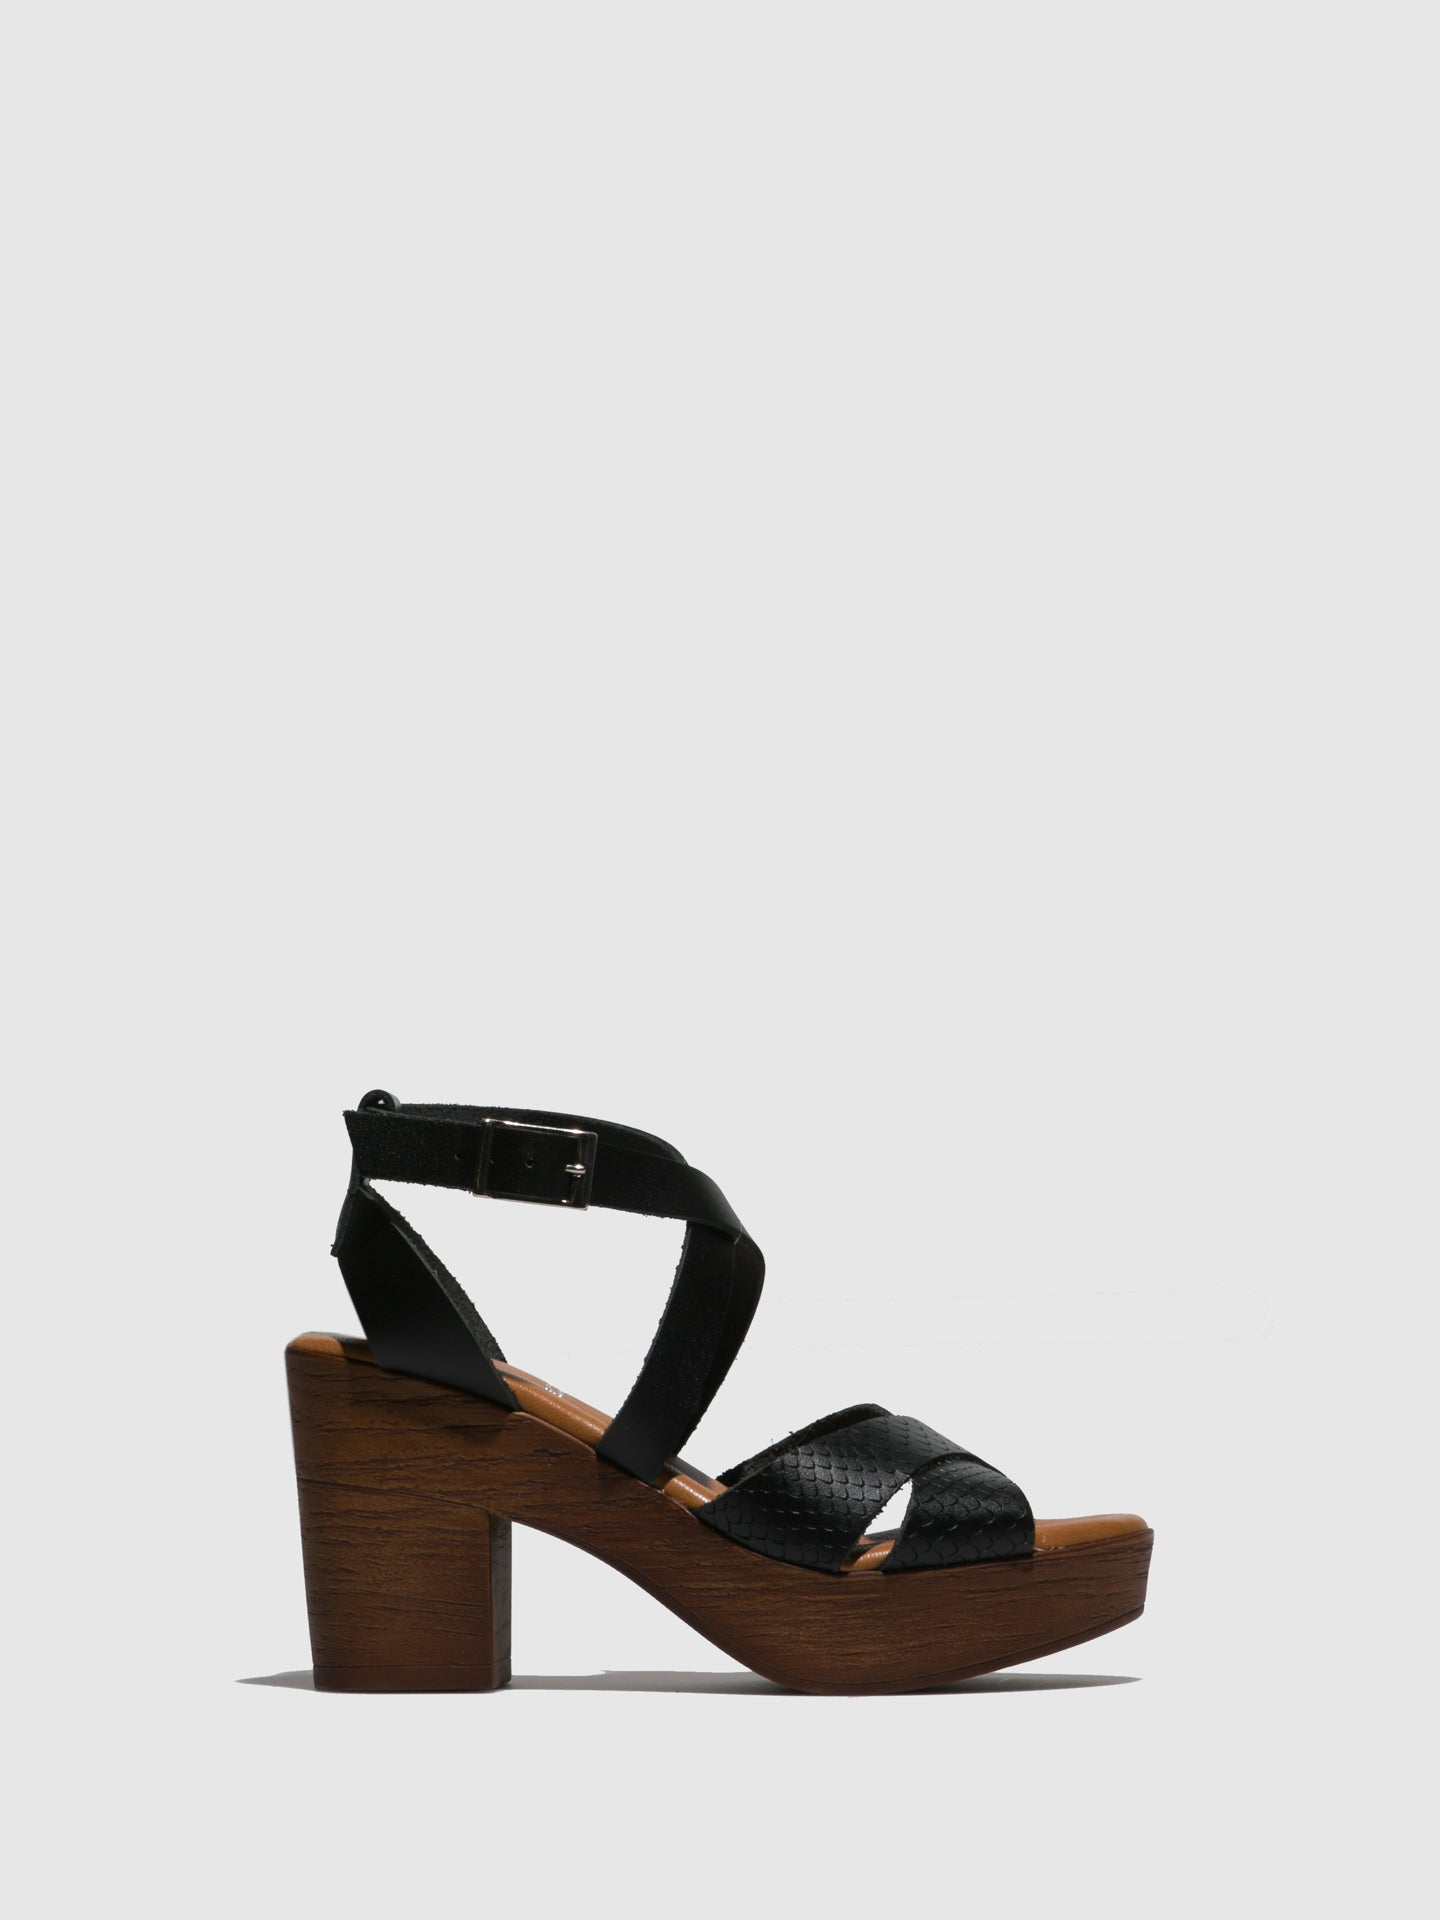 Marila Shoes Black Crossover Sandals